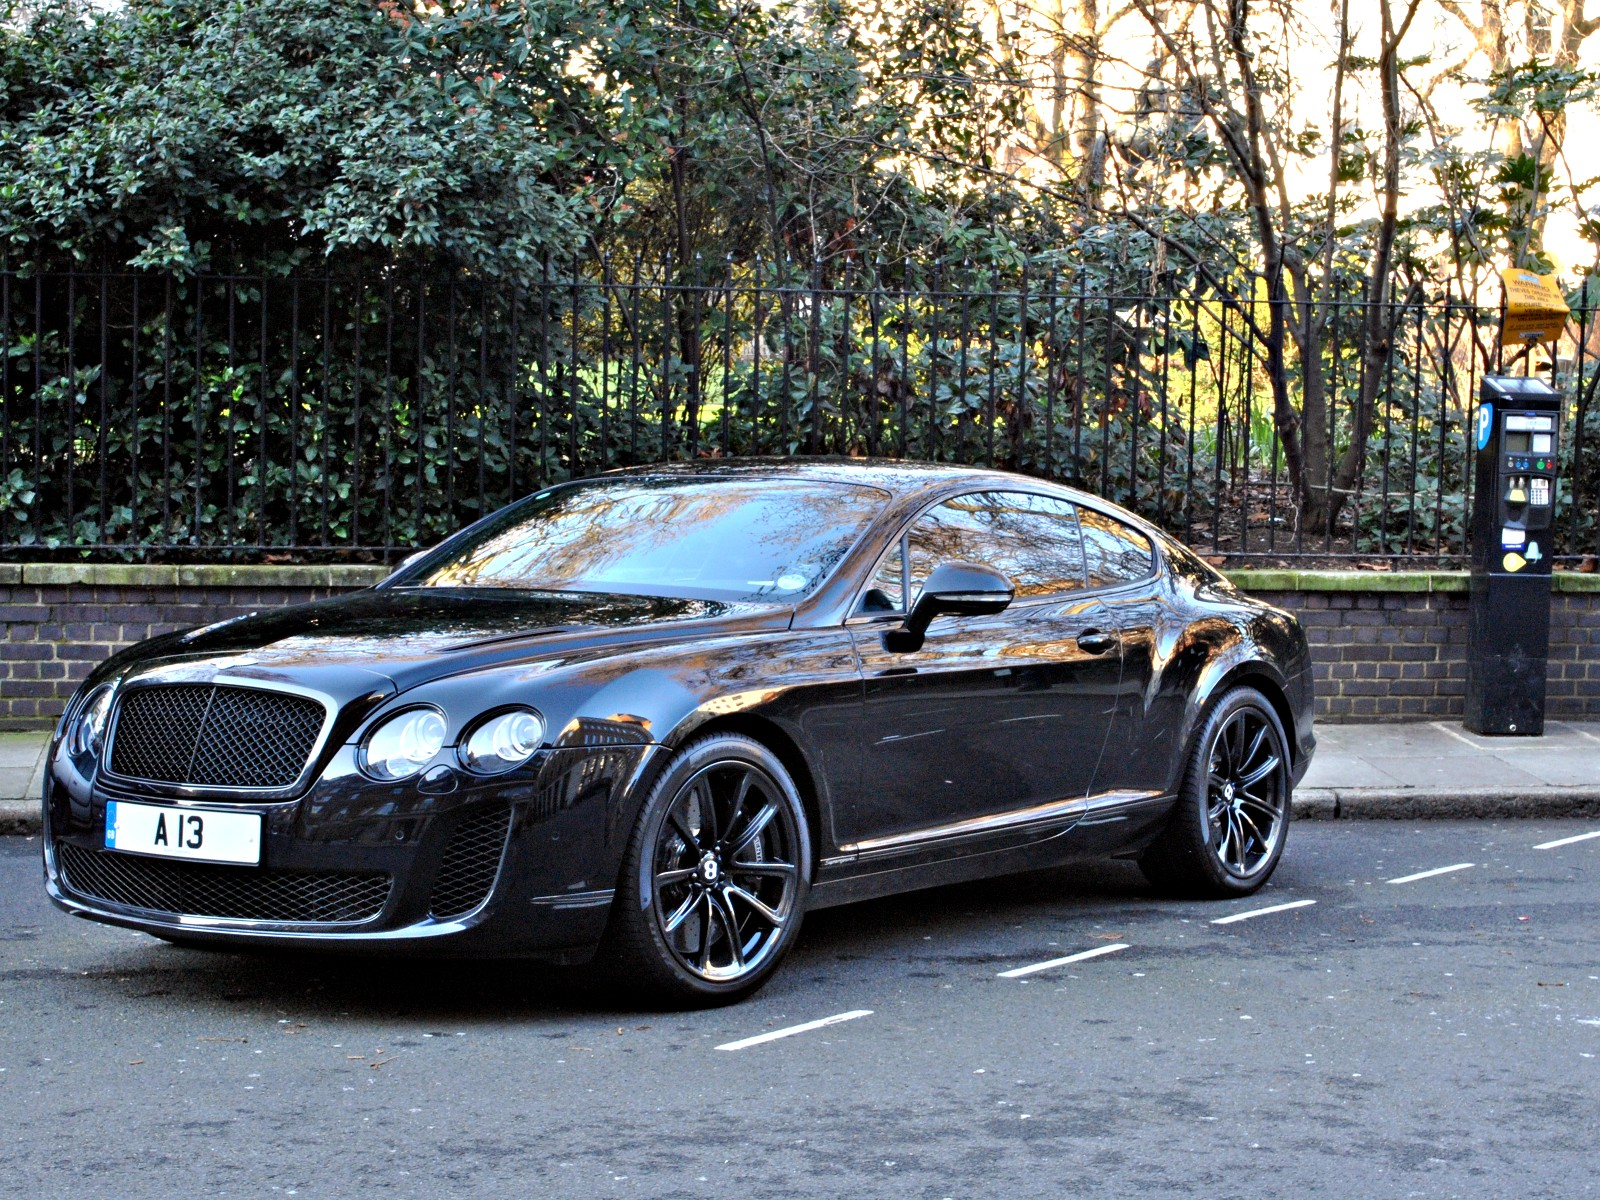 file bentley continental gt wikimedia commons. Black Bedroom Furniture Sets. Home Design Ideas